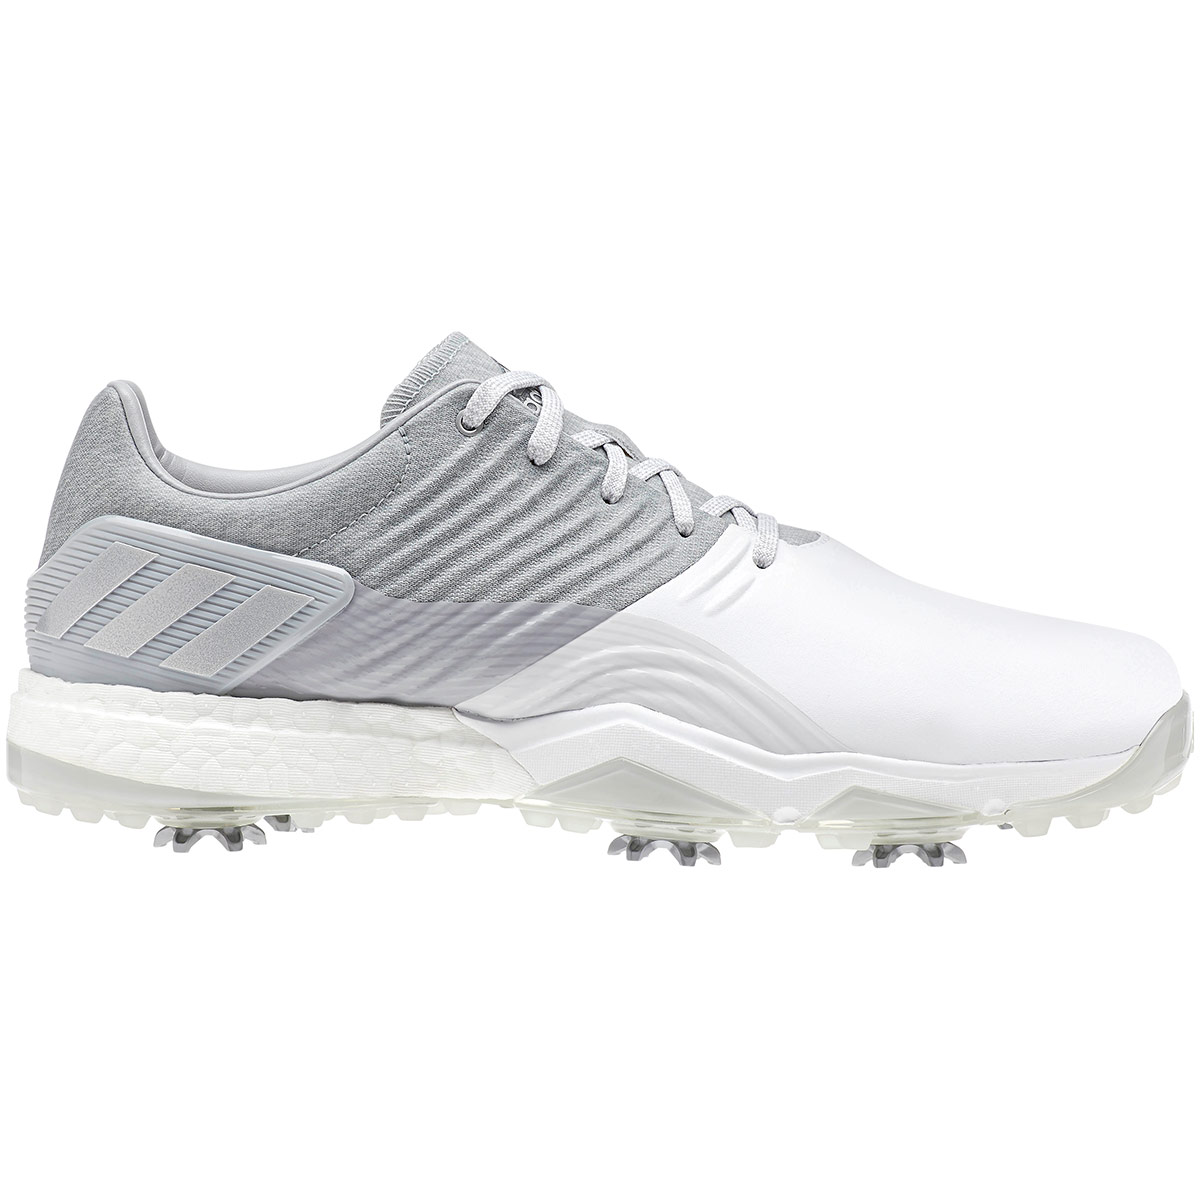 low priced 920a4 01f92 ... Adidas Adipower 4Orged S9 ...